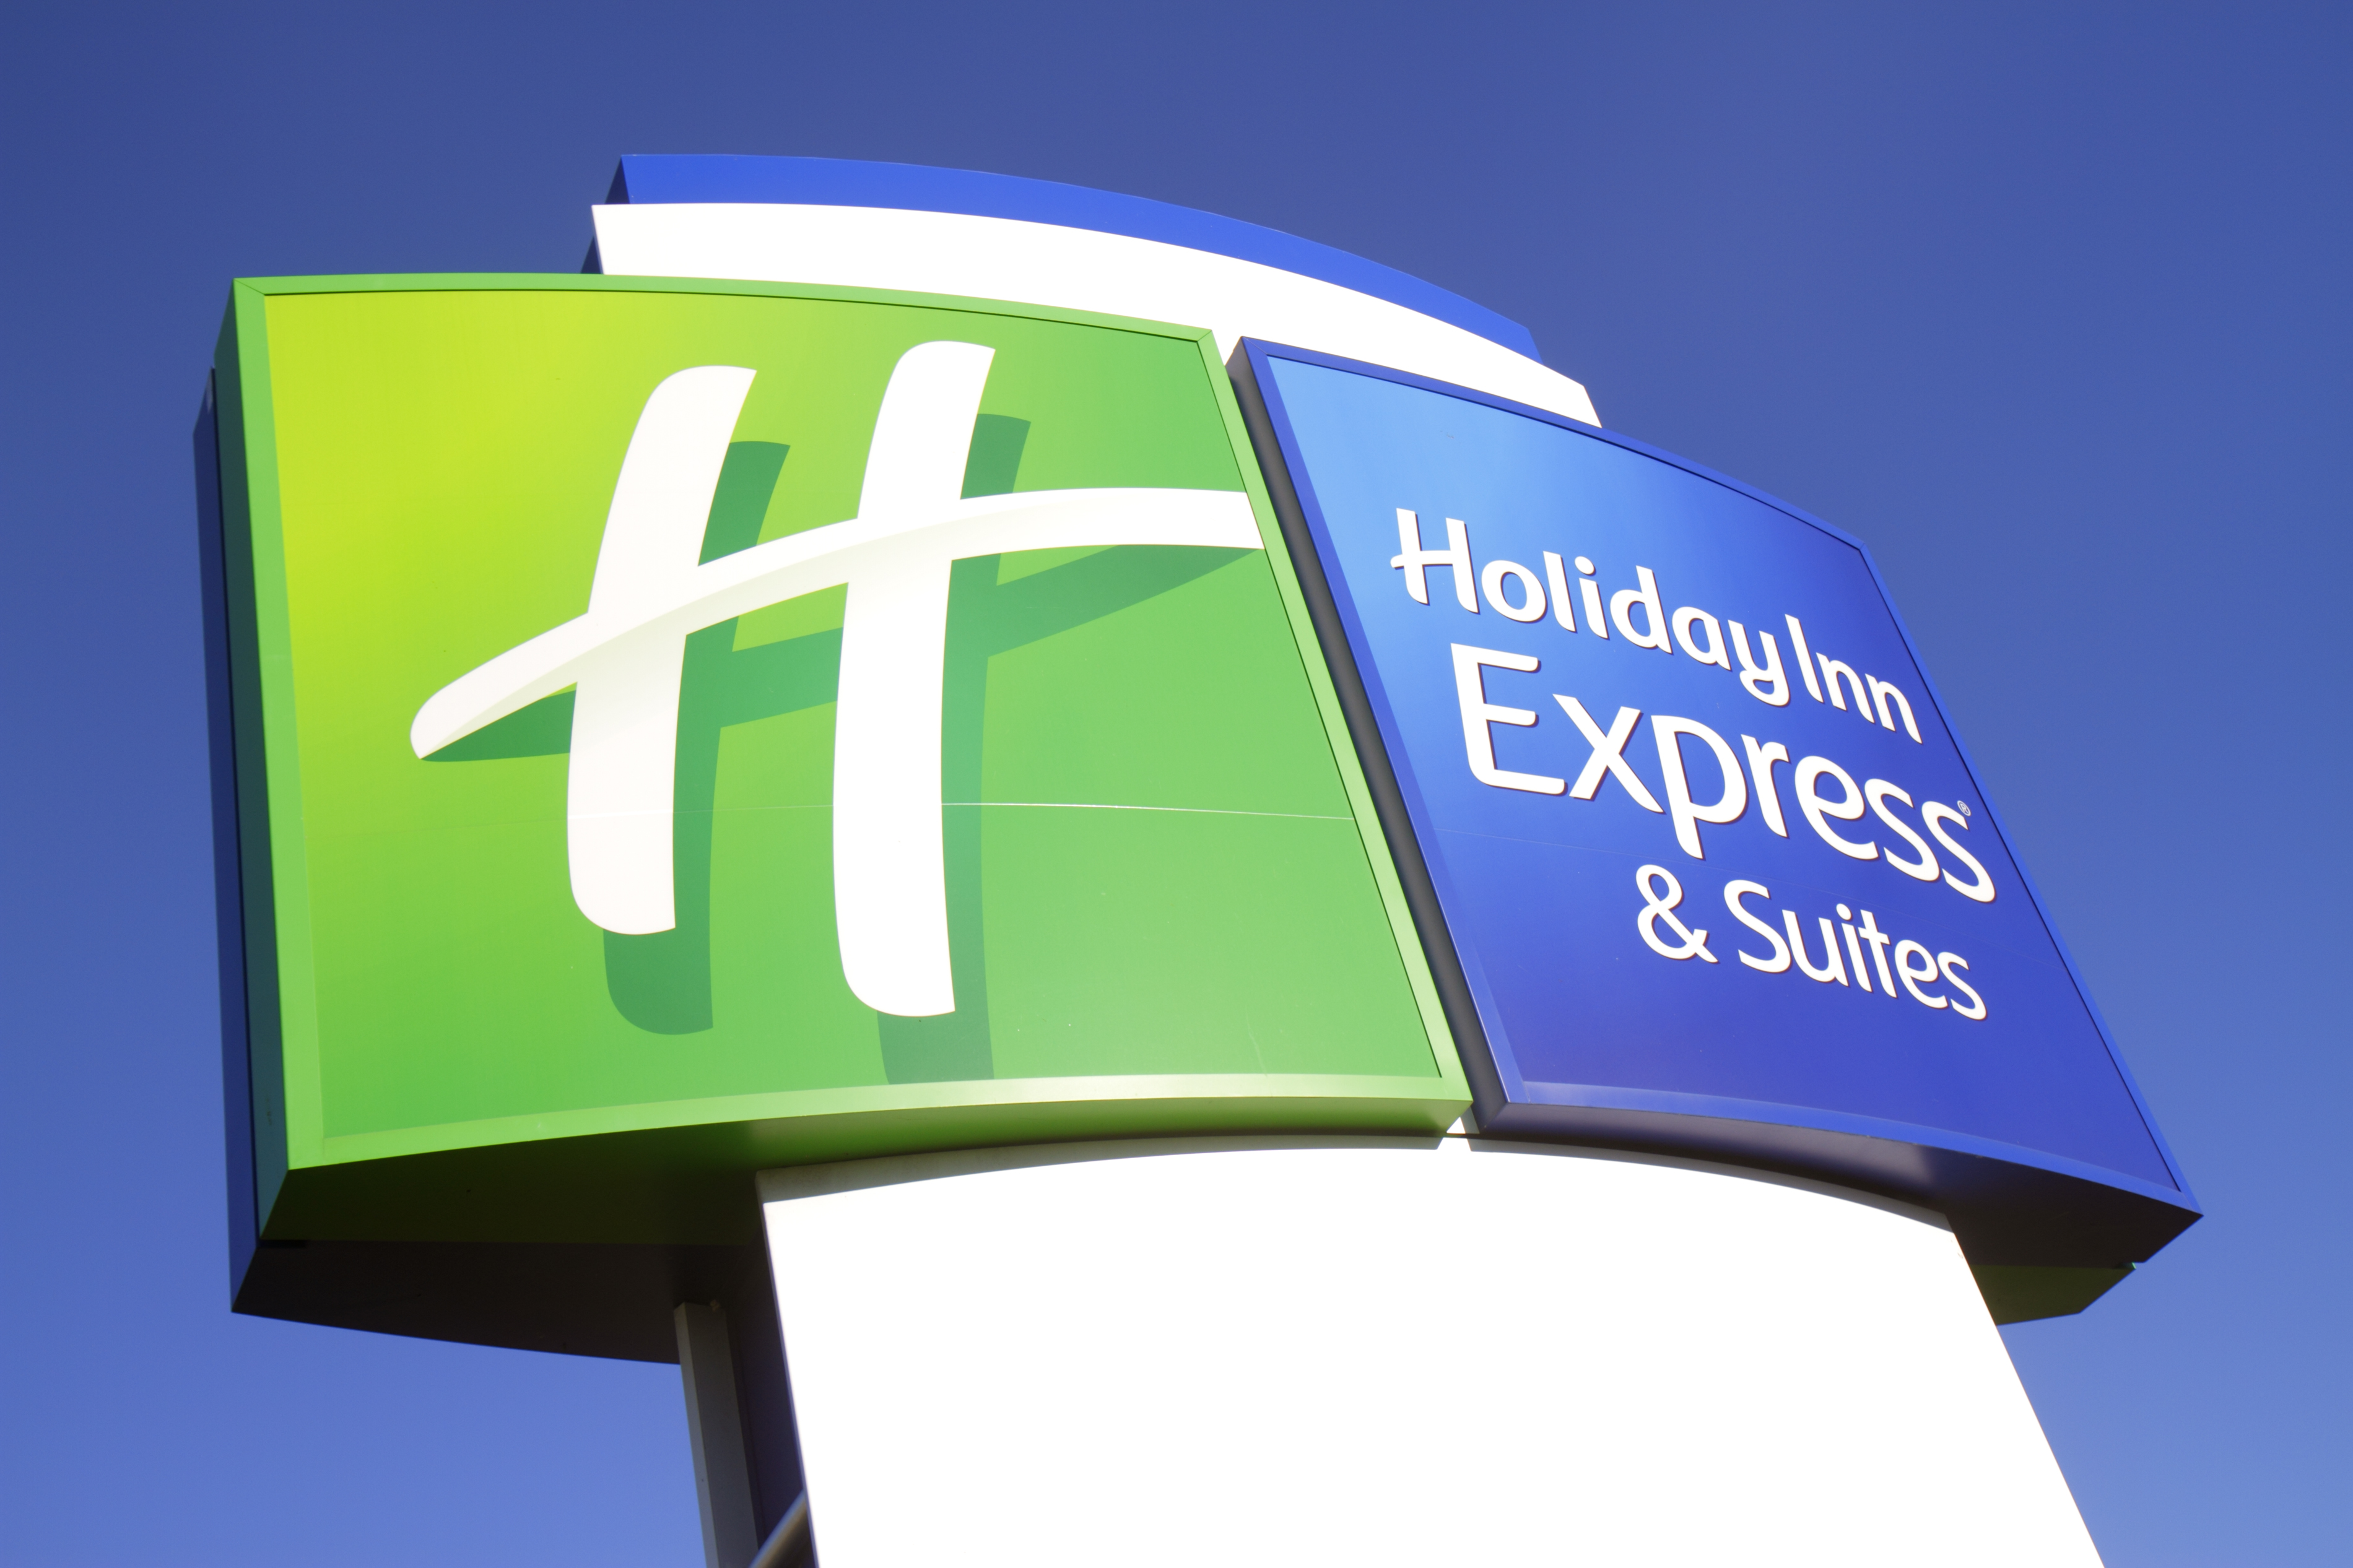 Holiday Inn Express and Suites sign in Vaca Key.